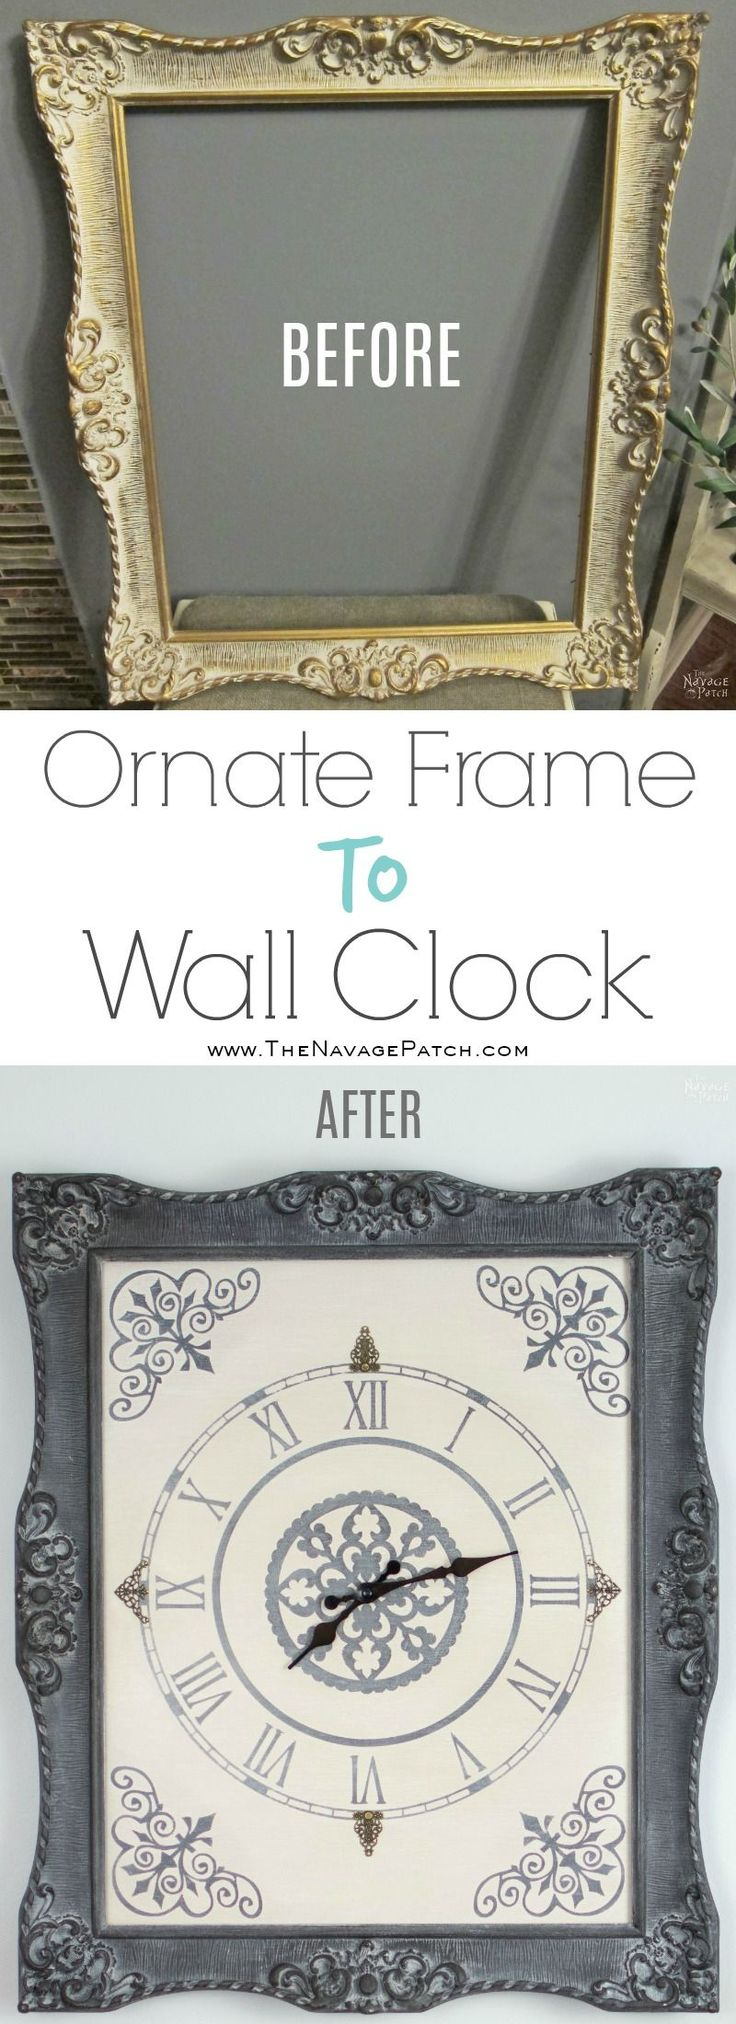 Ornate Frame to Wall Clock | Upcycled picture frame | How to make a wall clock f...